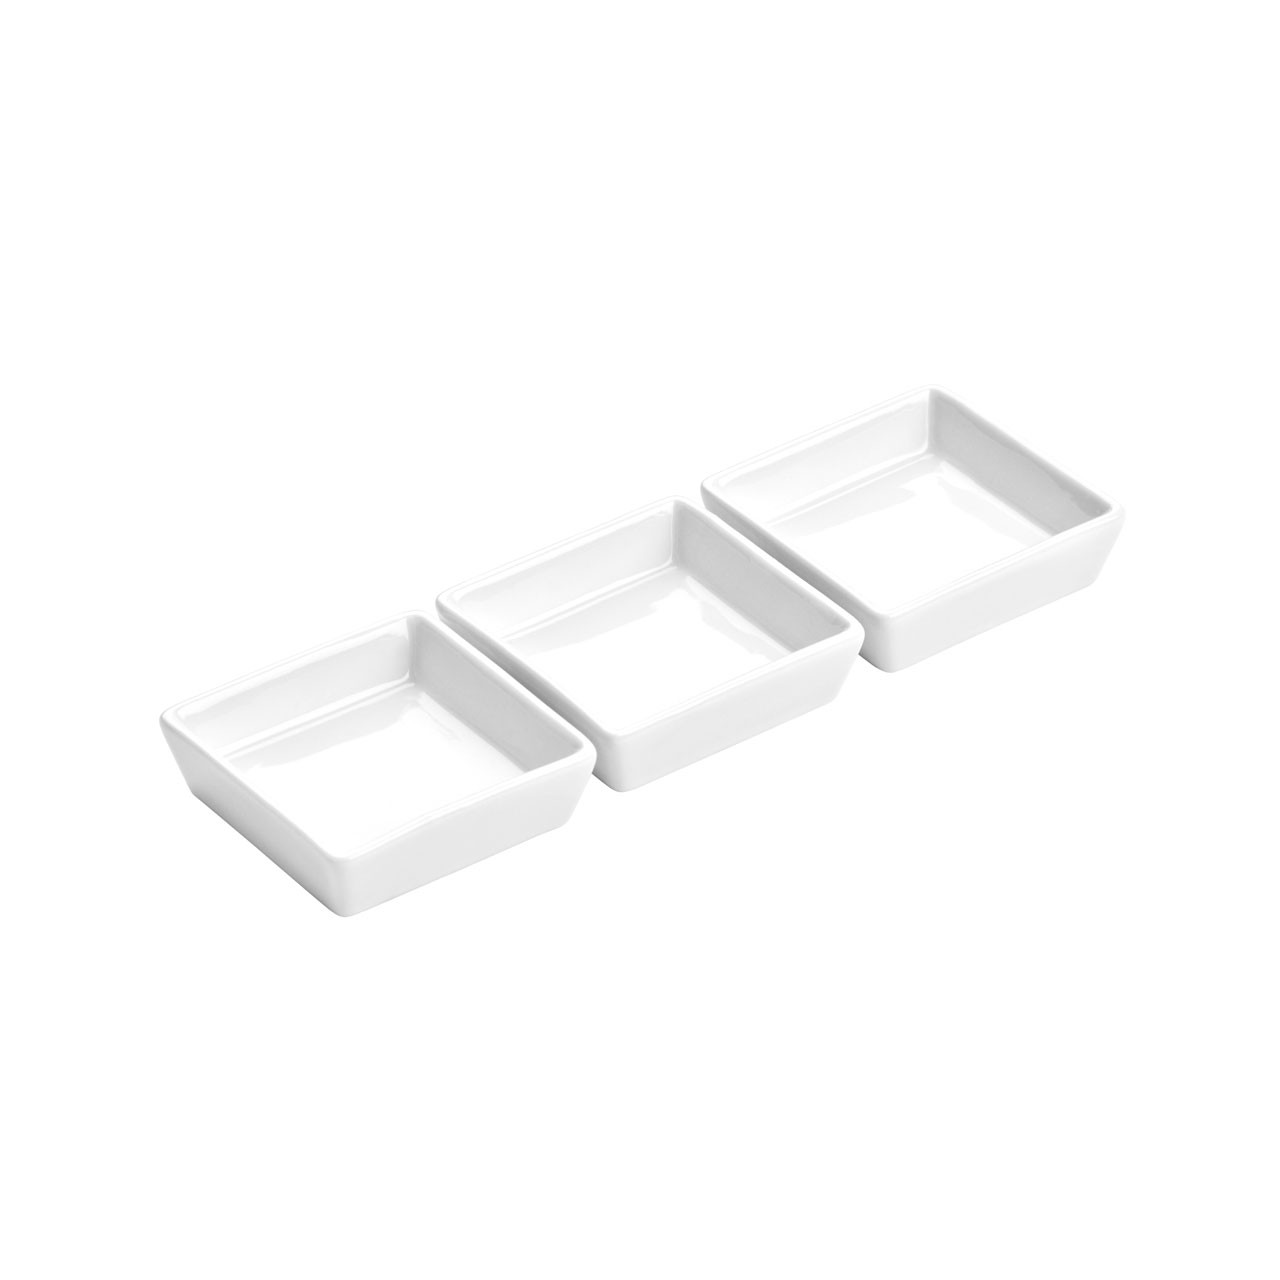 Square Entree Serving Dishes - White Porcelain, Set of 3